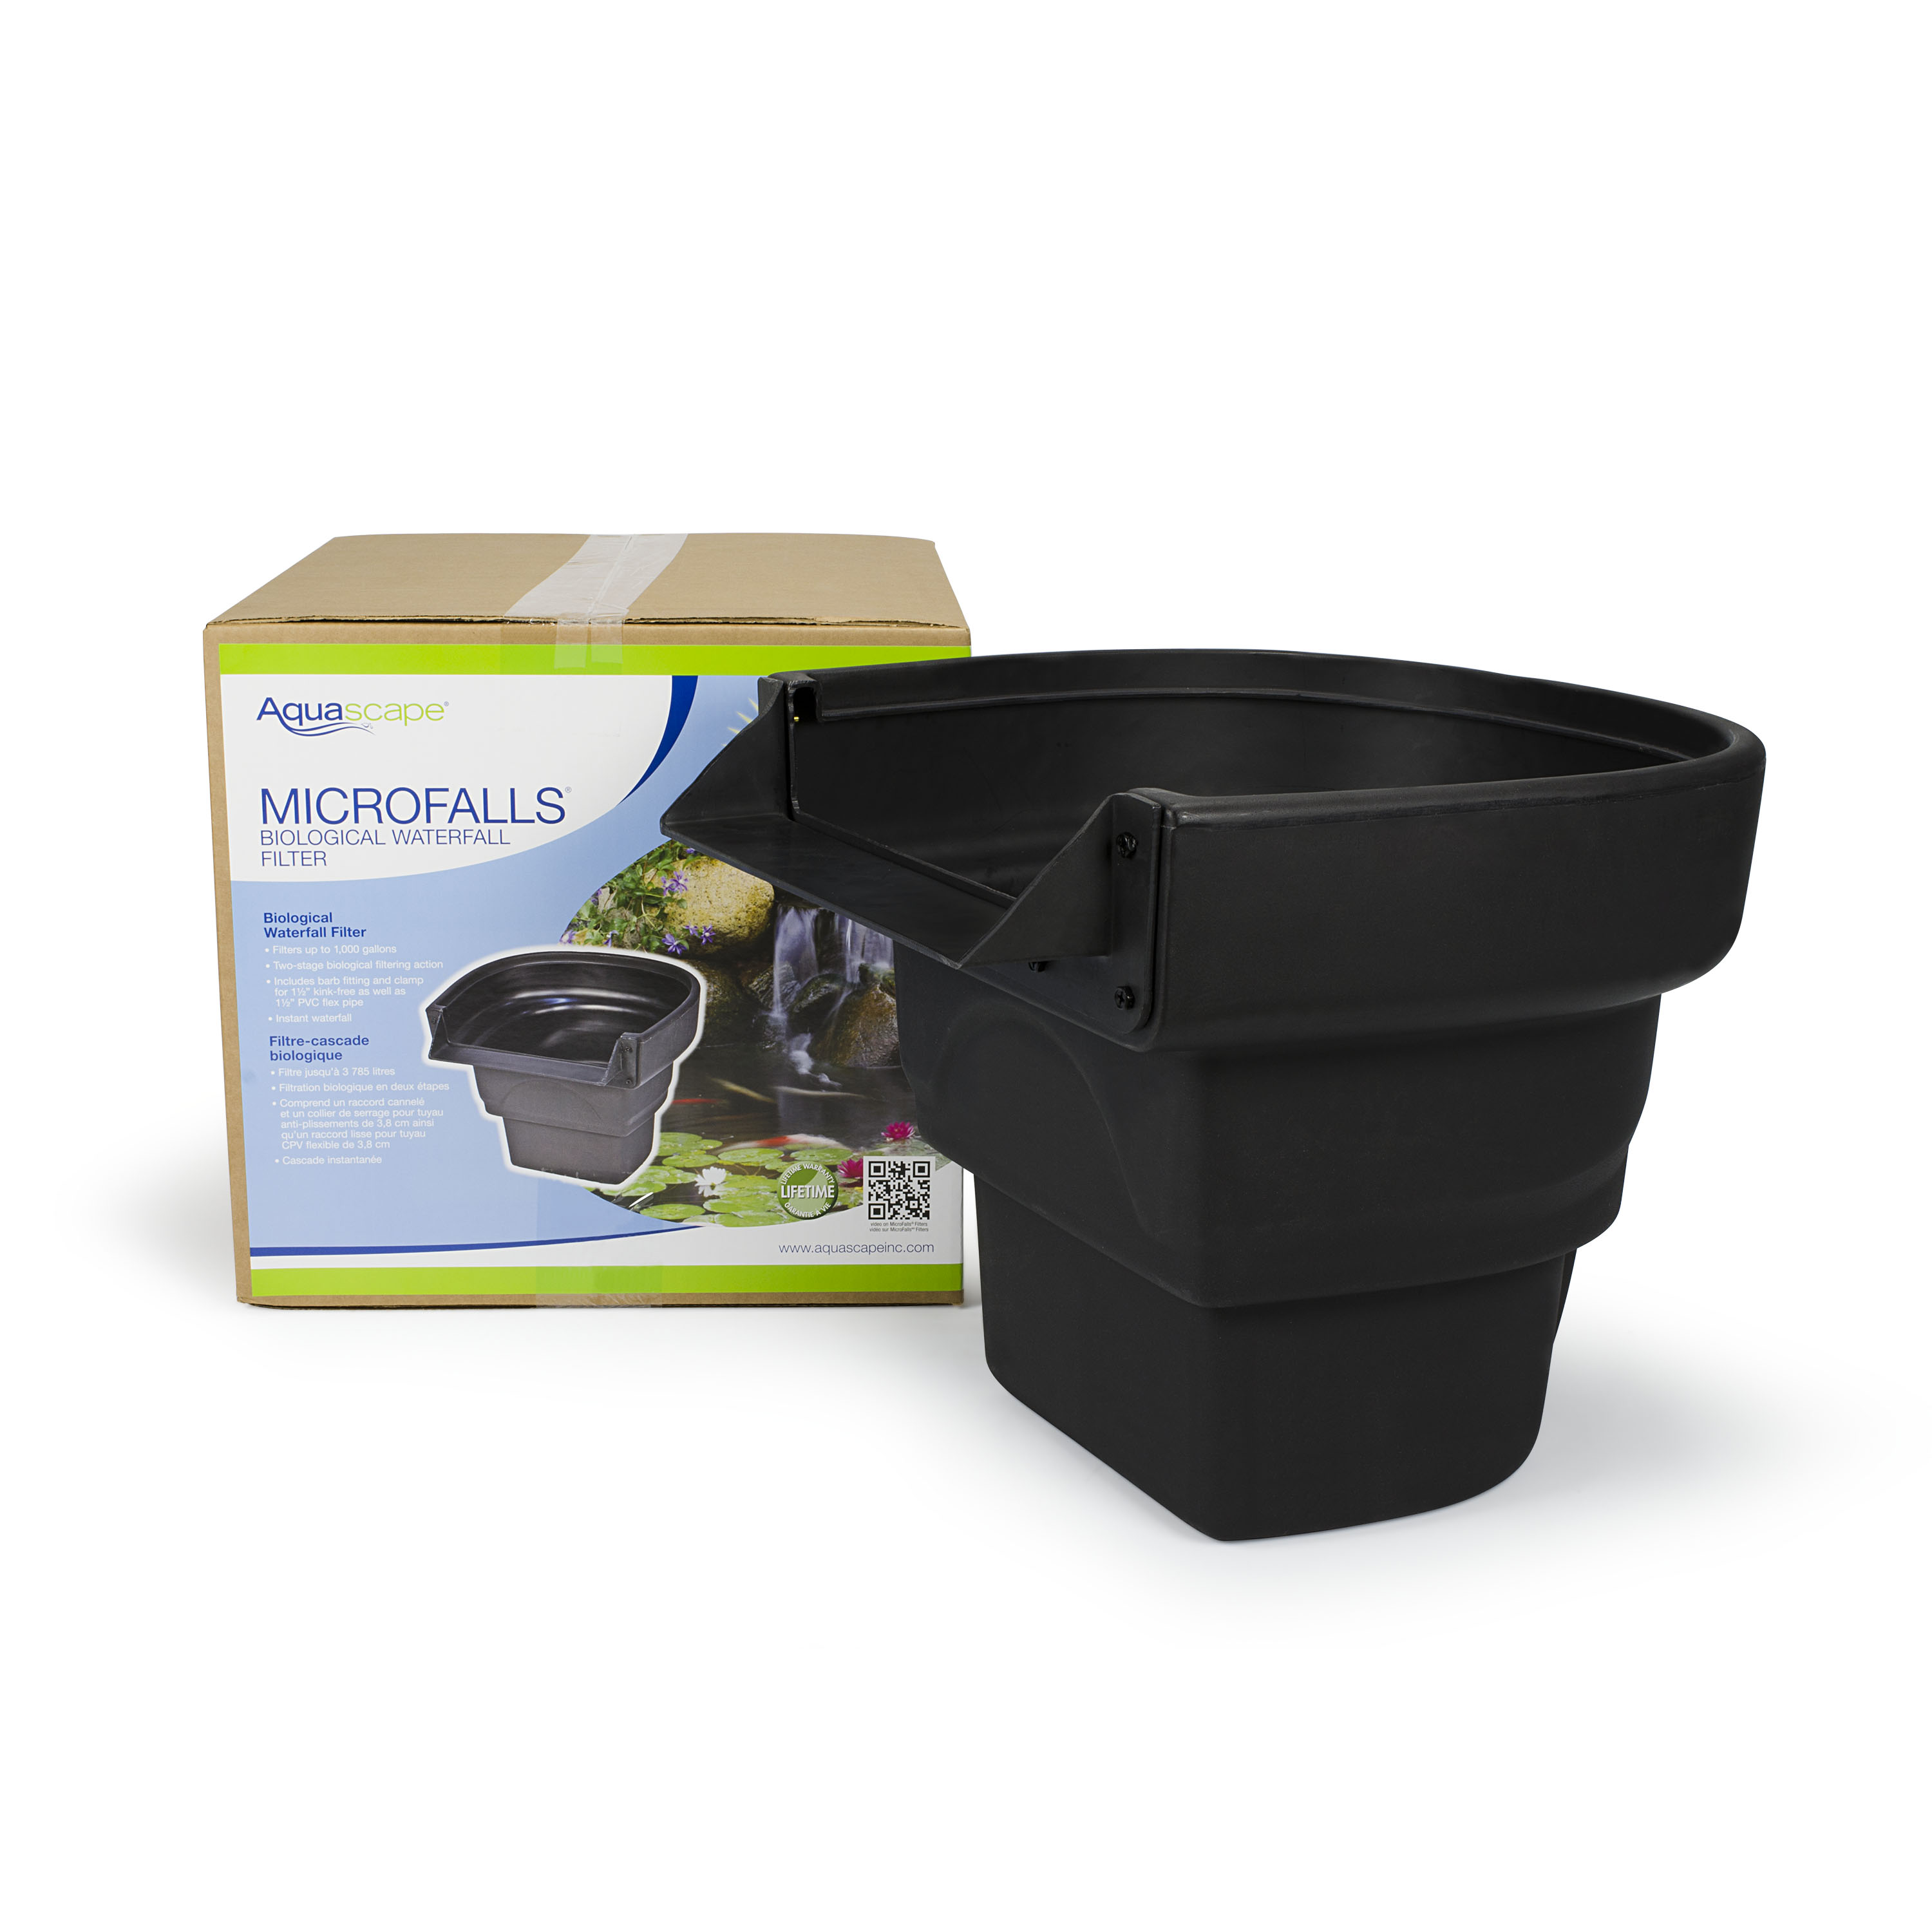 Aquascape ultraklean 1000 pond filtration kit aquascapes for Pond waterfall filter